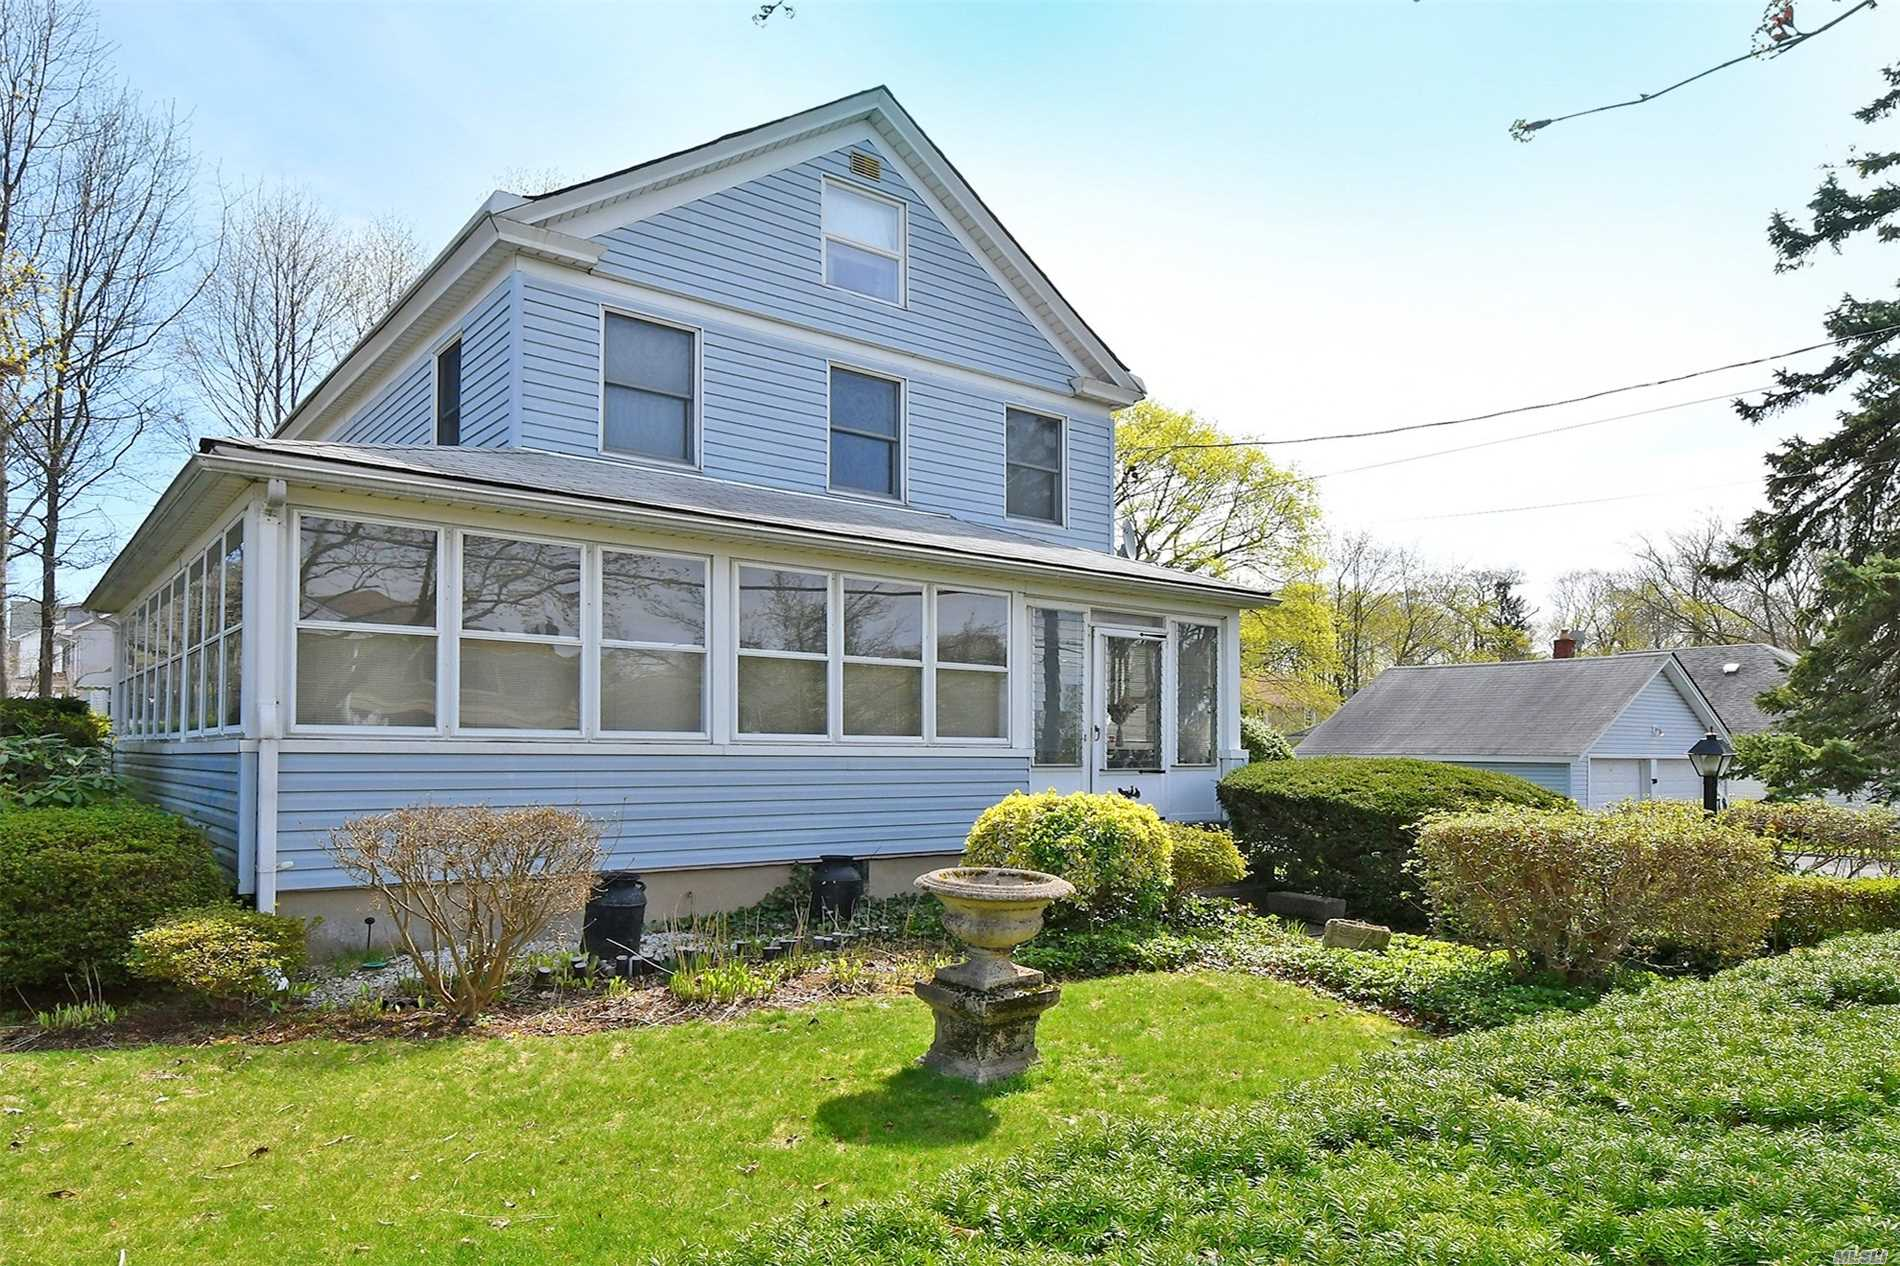 Lovely Manhasset Colonial. Features Include: A Spacious LR, Formal DR, Eat-In-kitchen, 3 Bedrooms, 1.5 Baths, Wrap Around Sunroom, Full Basement, Walk Up Attic With Stairs. Beautiful Property. Conveniently Located Near Town And Transportation.